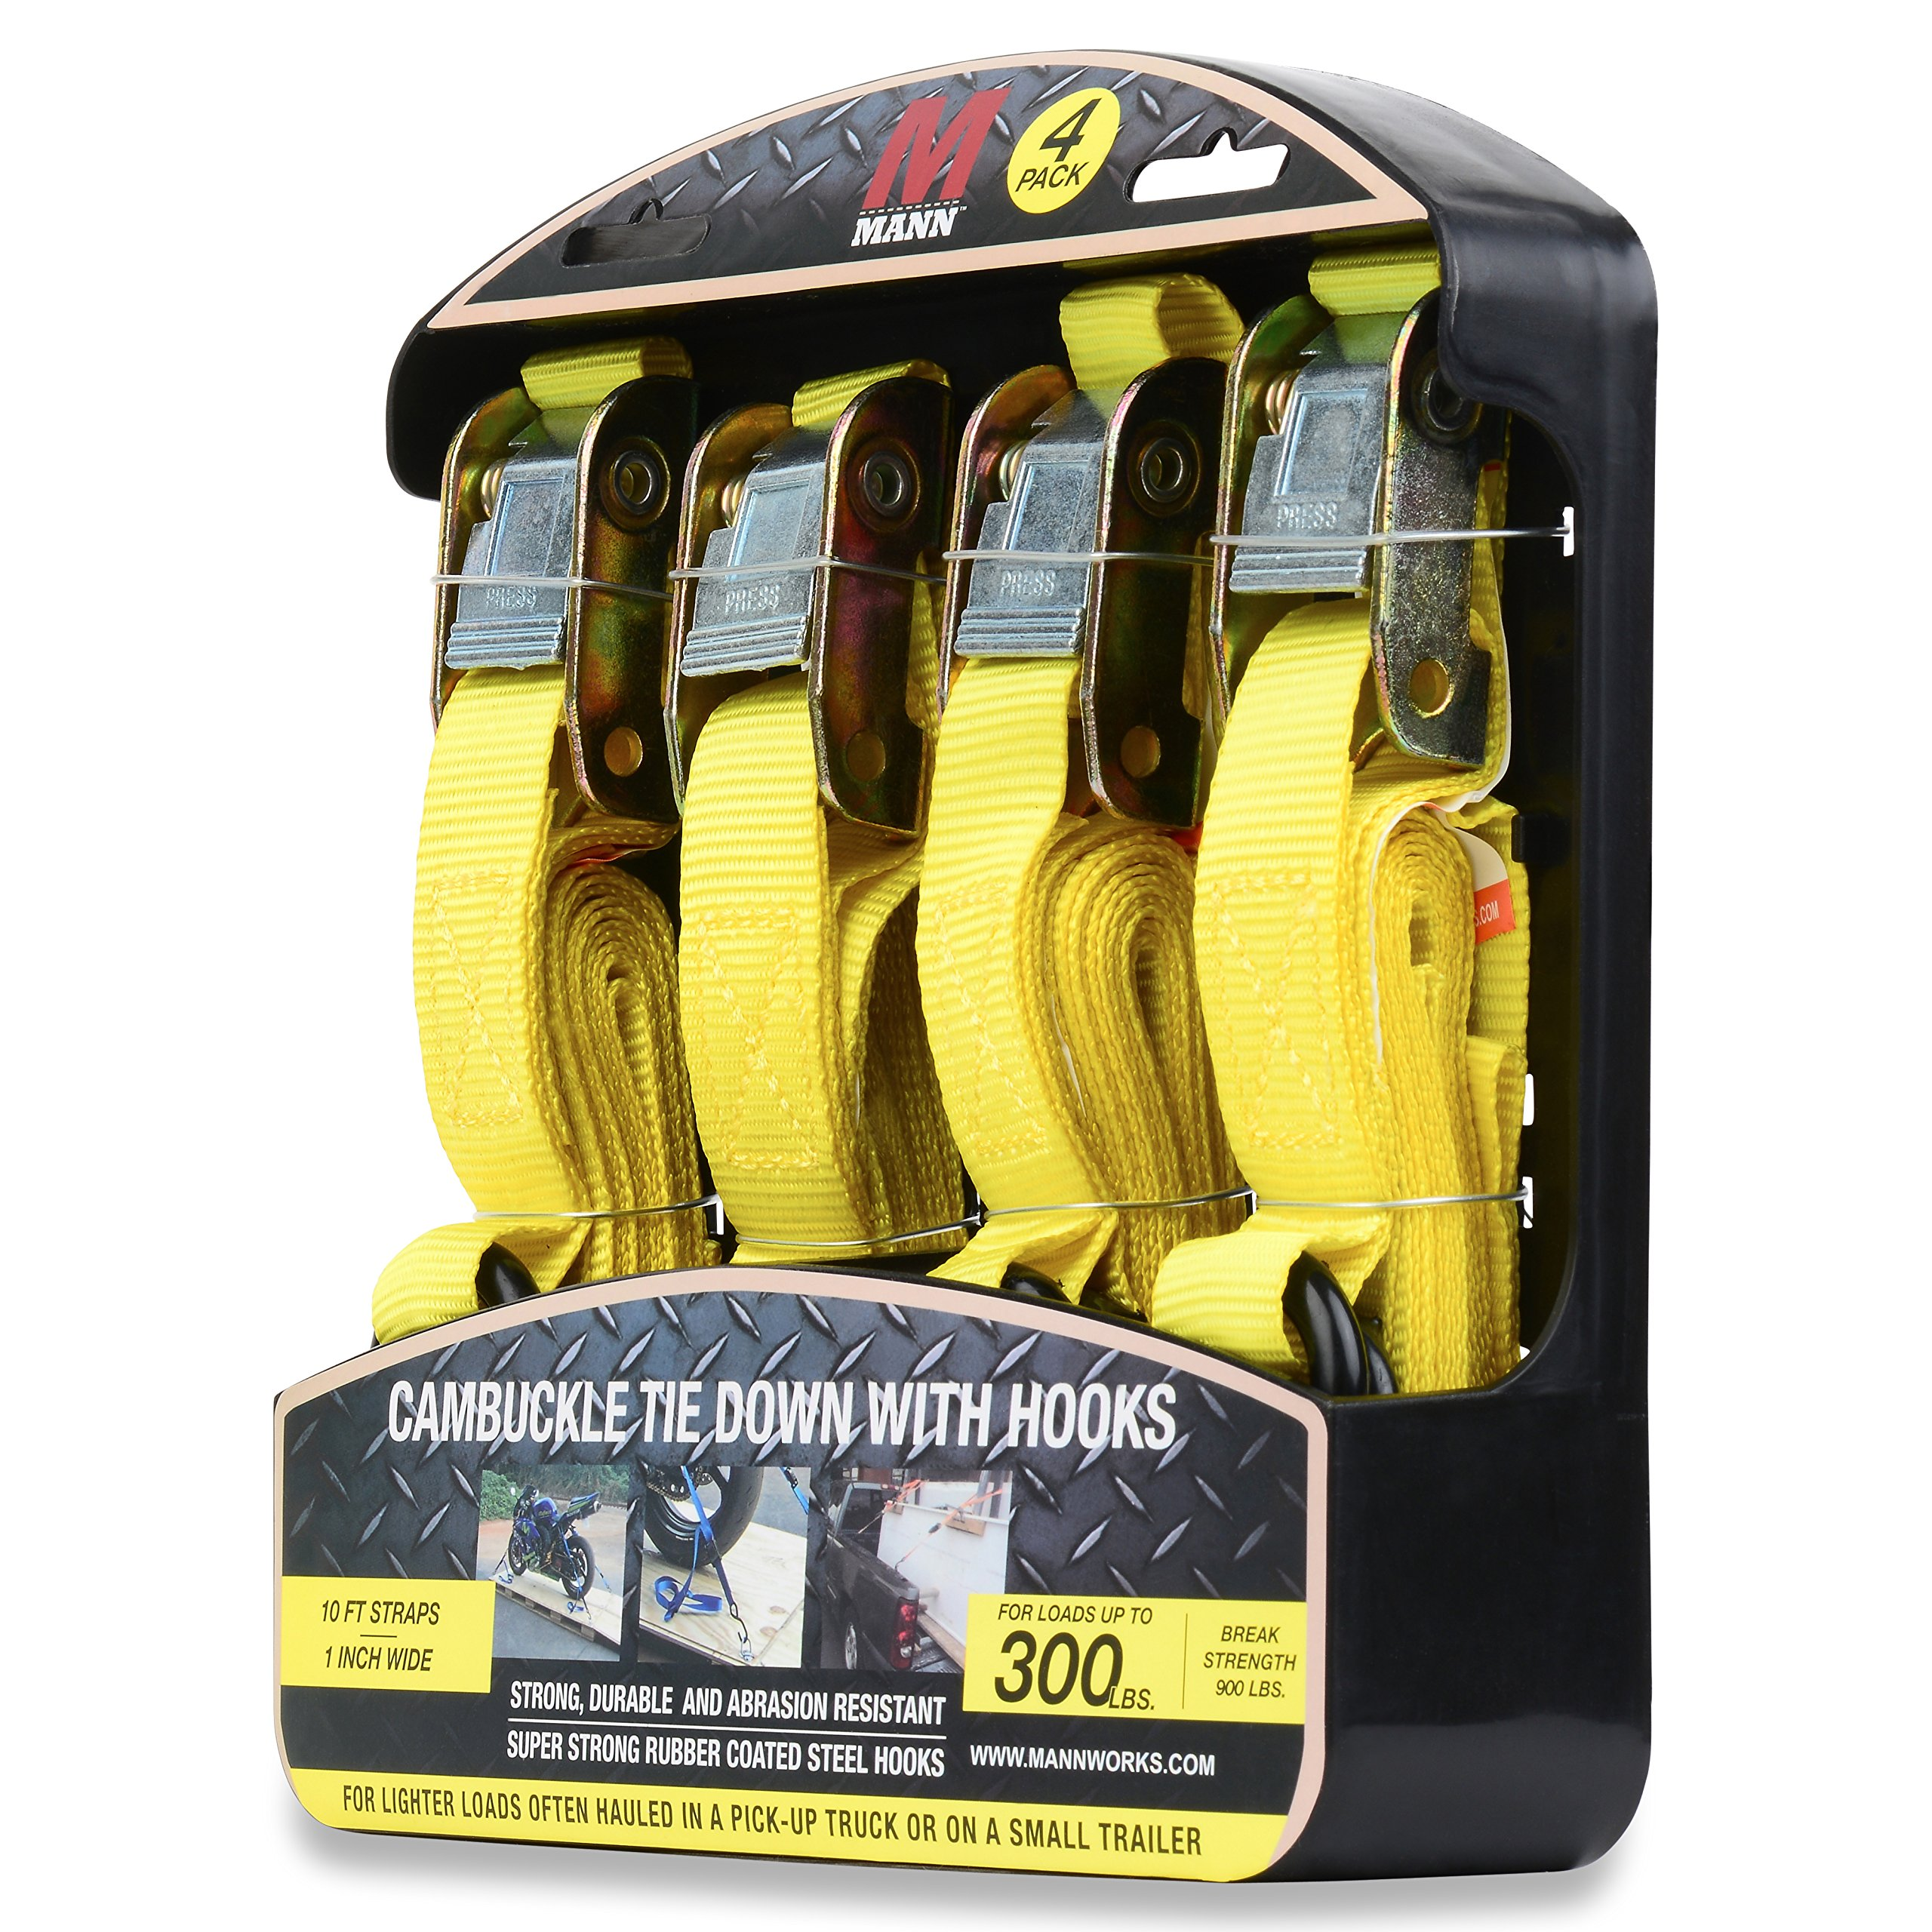 Mann Cambuckle Tie Down Straps with S-hooks 4-Pack Set 1''x10' 300lb Load Capacity 900lb Break Strength (Yellow) by Mann (Image #2)